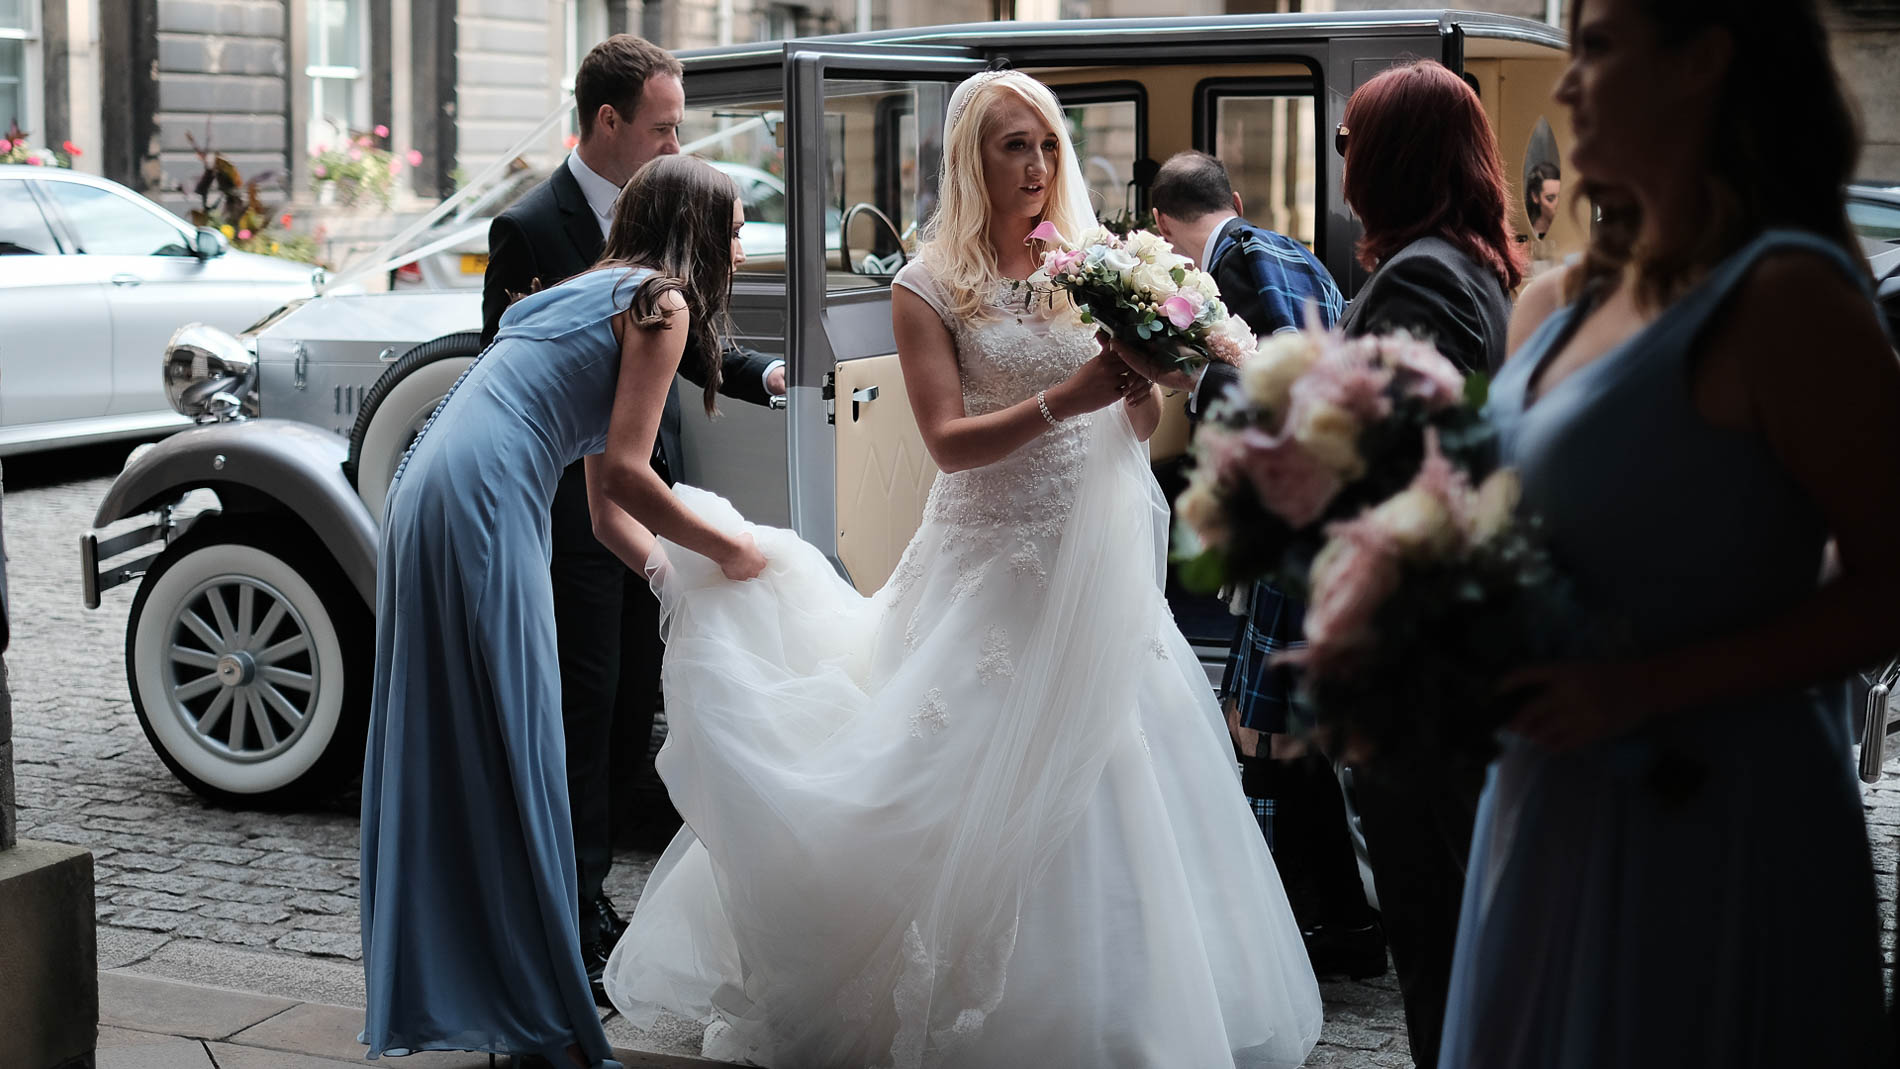 A colour photograph of bridesmaids adjusting the bride's dress as she exits her wedding car